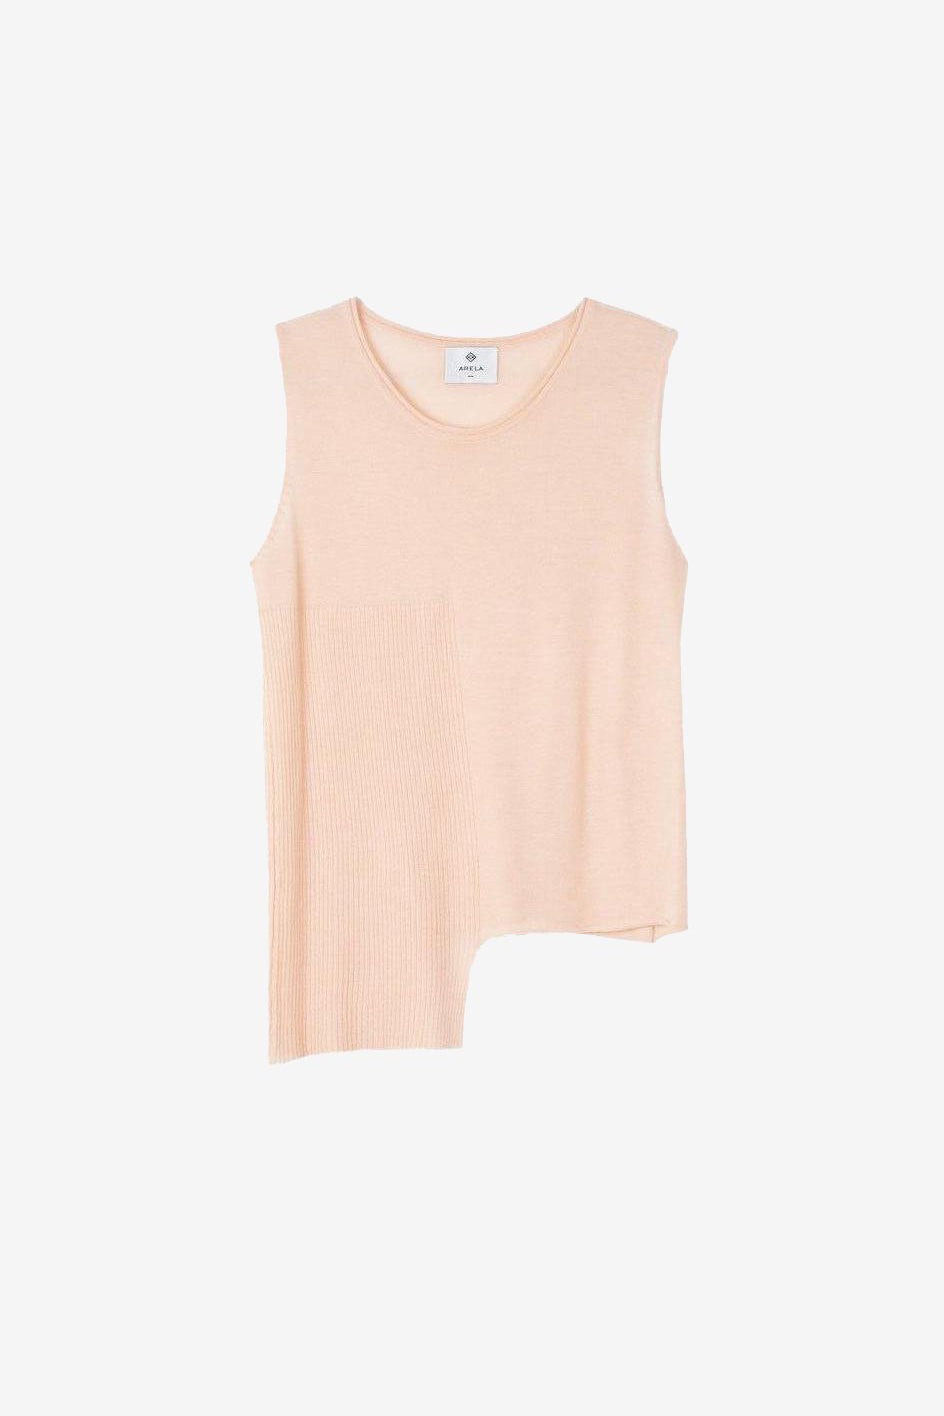 For Good: Peach Top, size XS